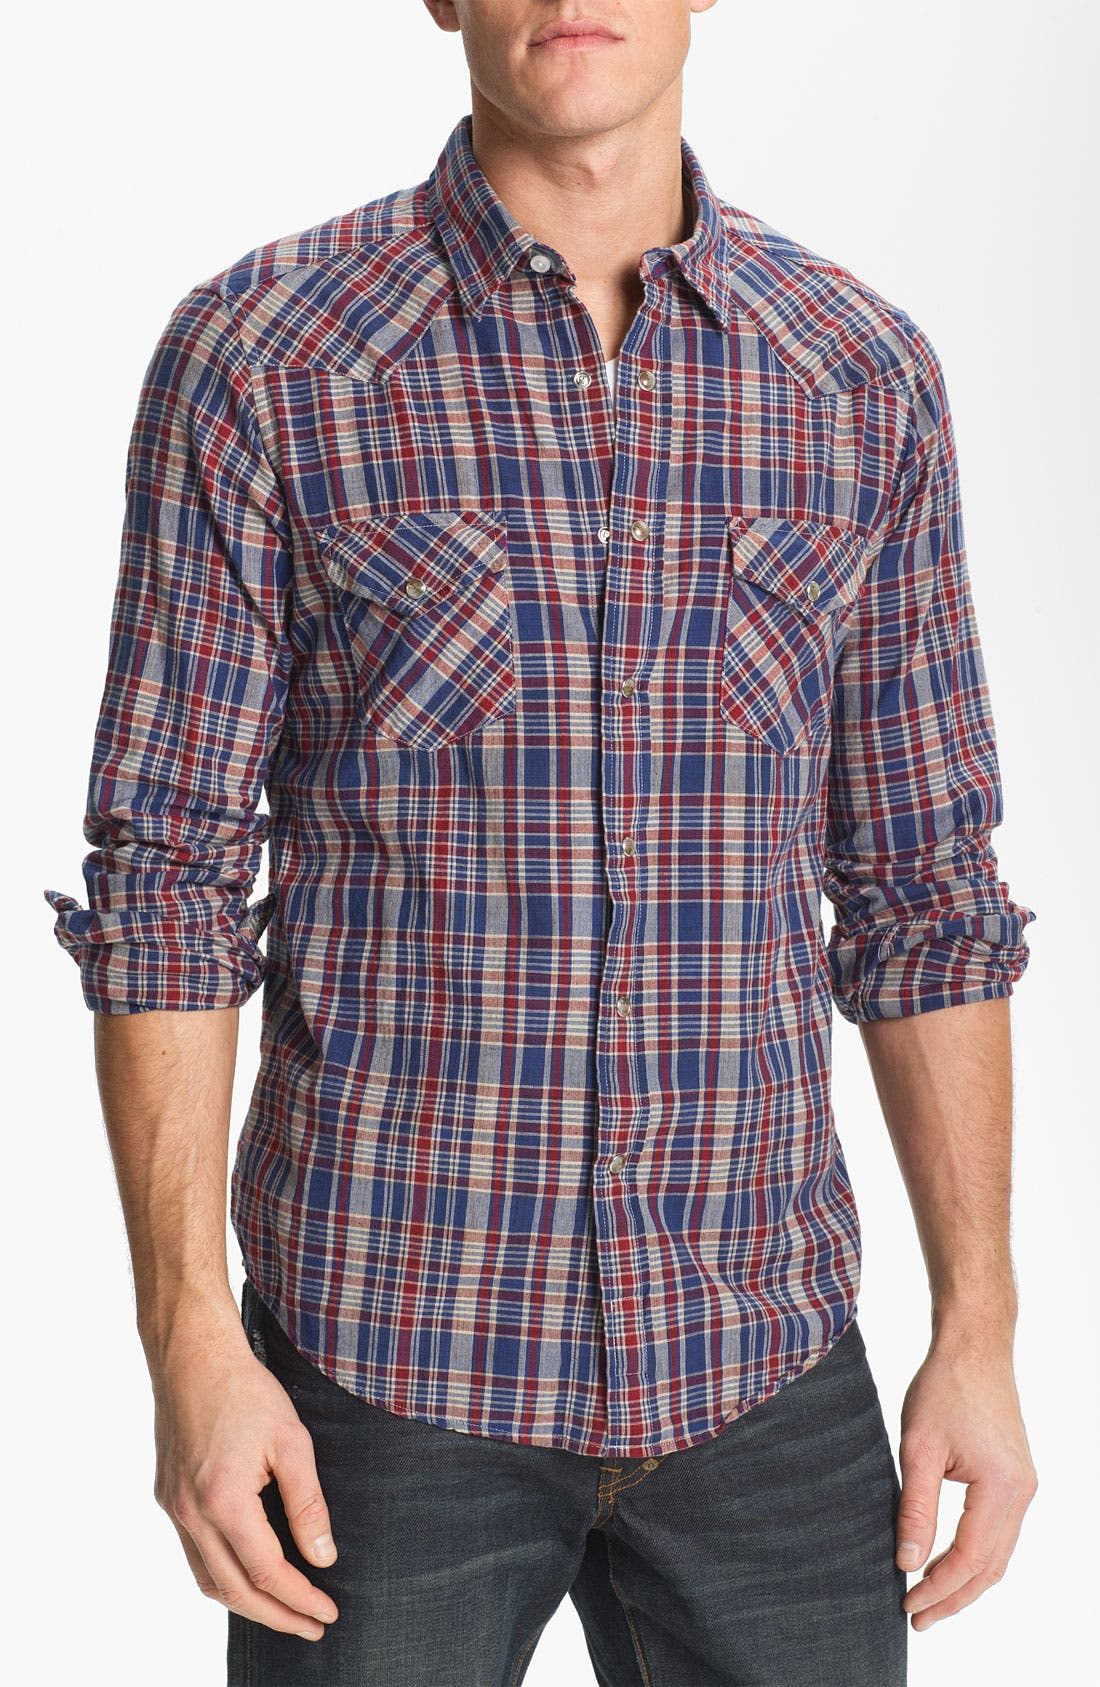 Alternate Image 1 Selected - Pendleton 'Epic' Madras Plaid Western Shirt